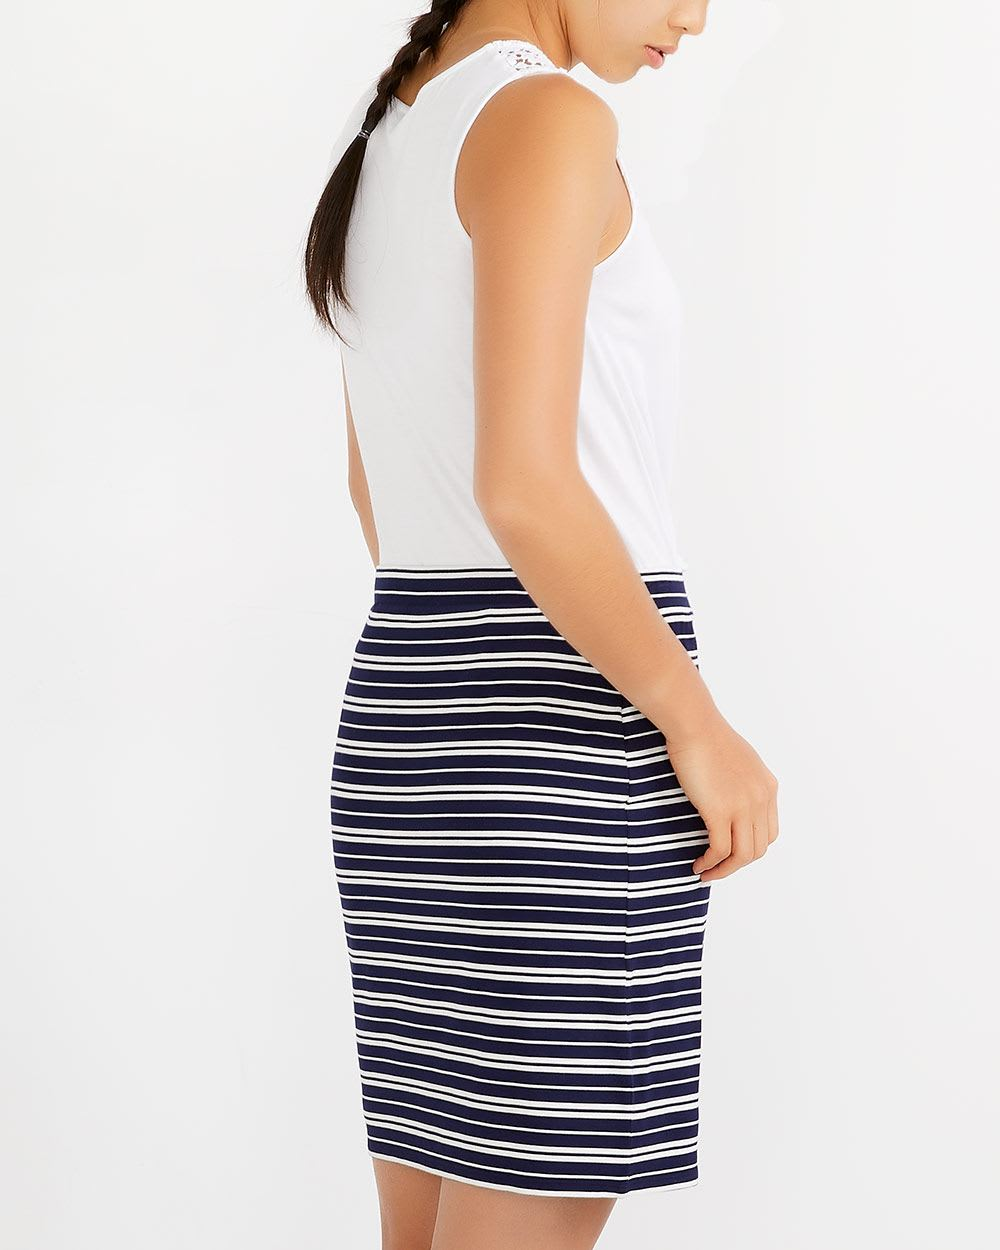 Elastic Waistband Striped Skirt